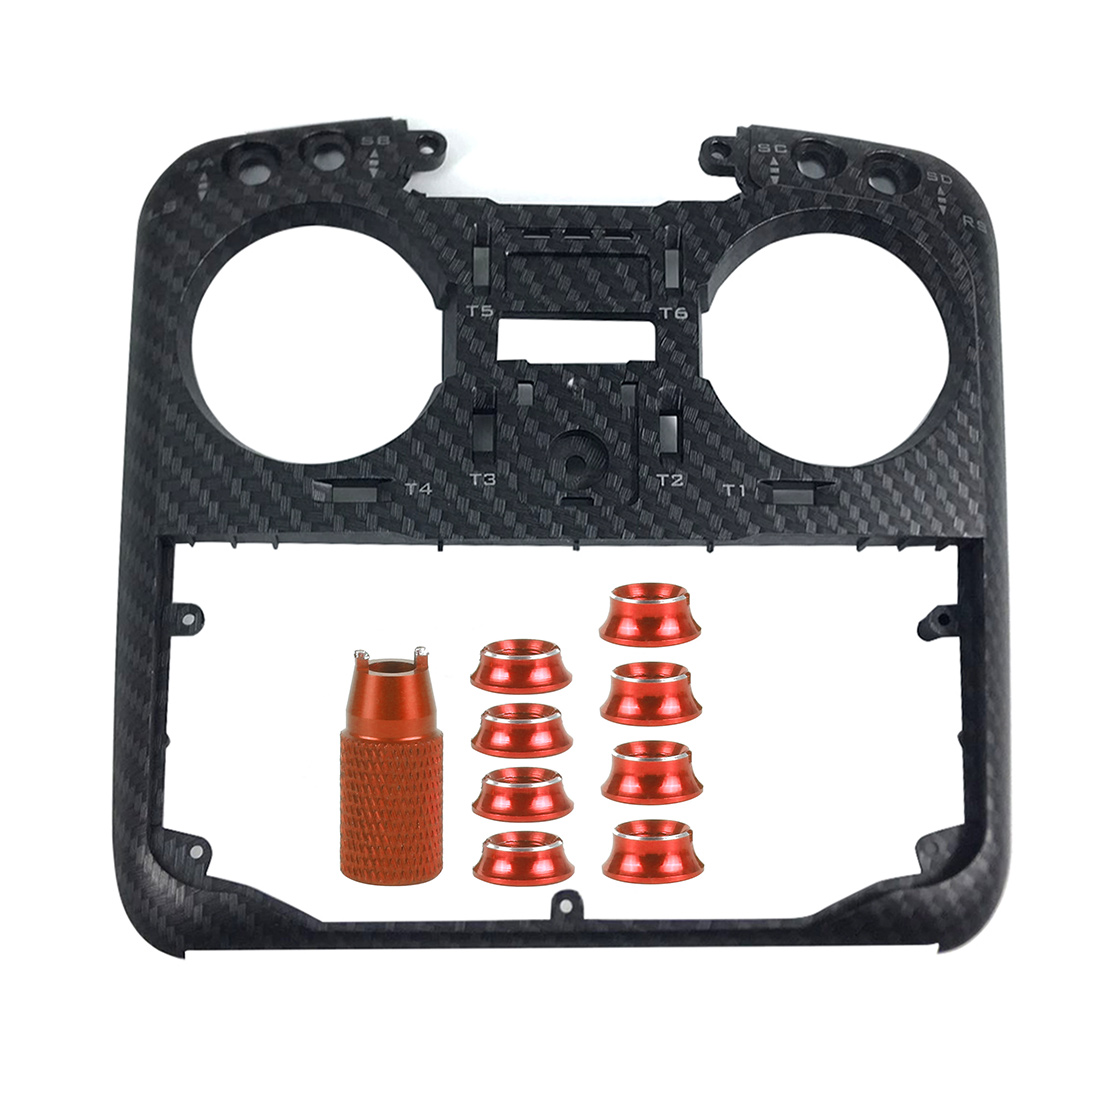 JMT Protective Shell Carbon Fiber RC Transmitter Front Panel With Switch Nut For Jumper T16 PLUS Pro Radio Controller TX